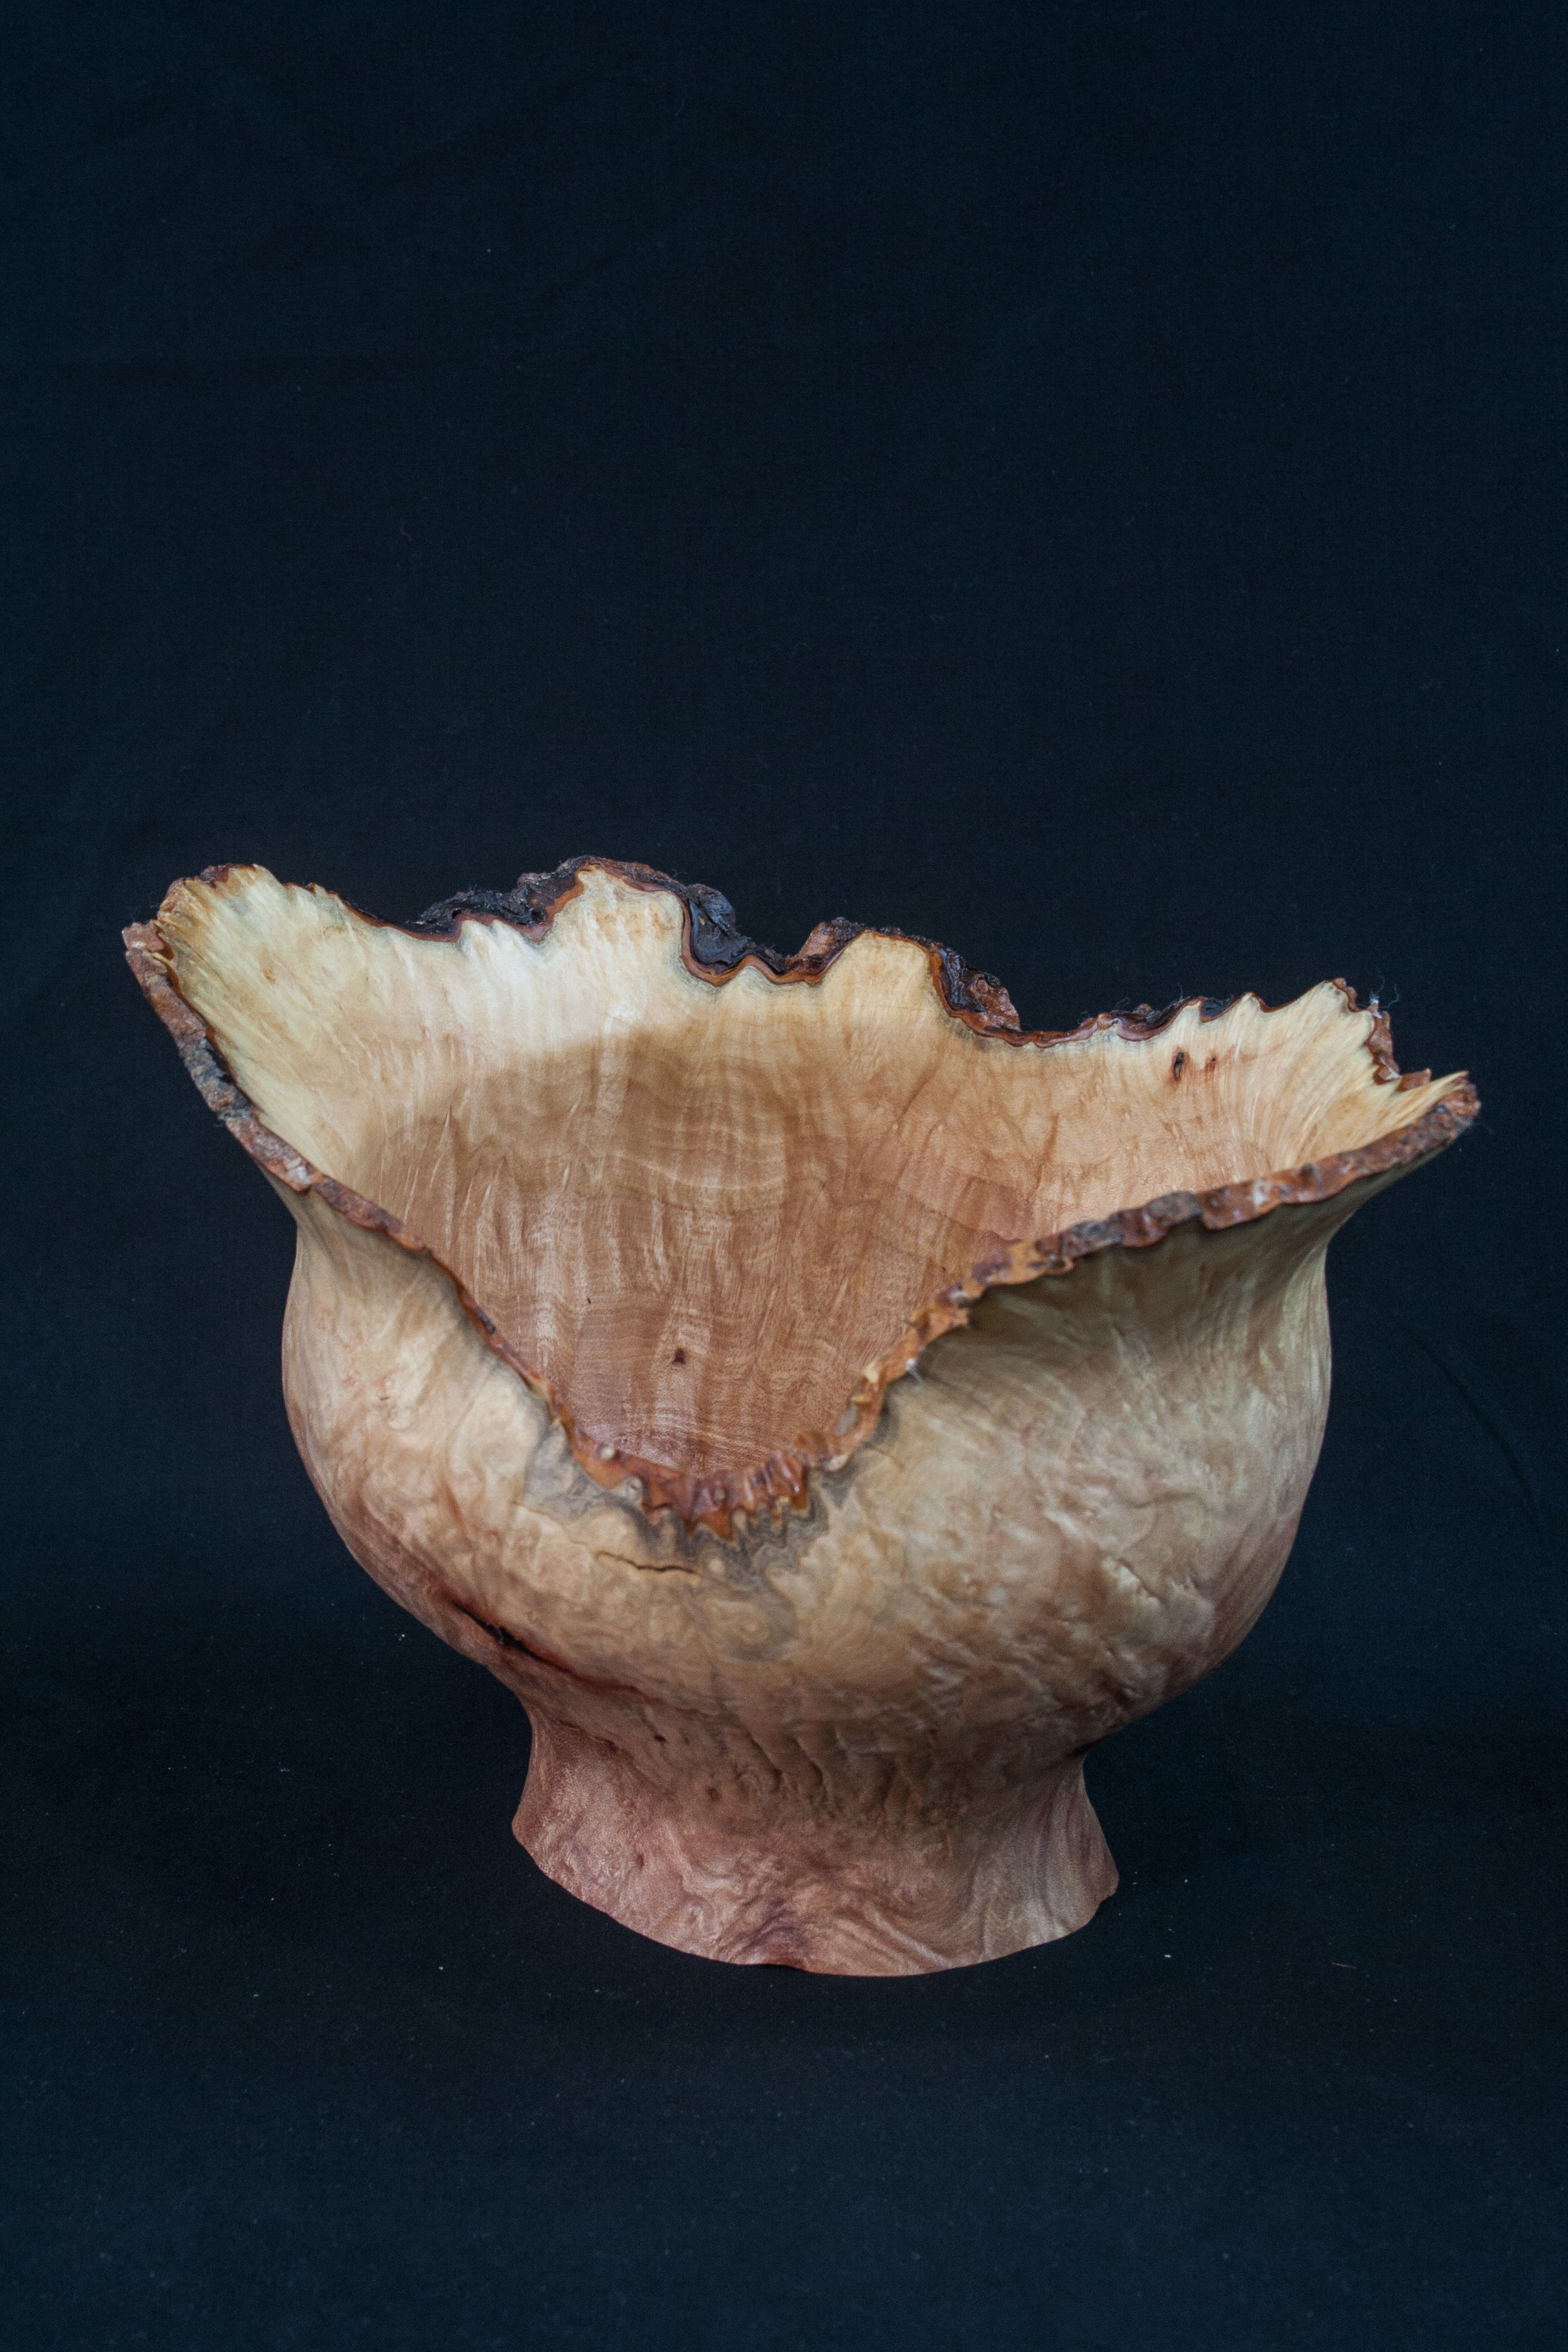 36A Madron Burl Natural Edge Distorted Hollow Form 8 x 6 ........   $289 .........   SOLD